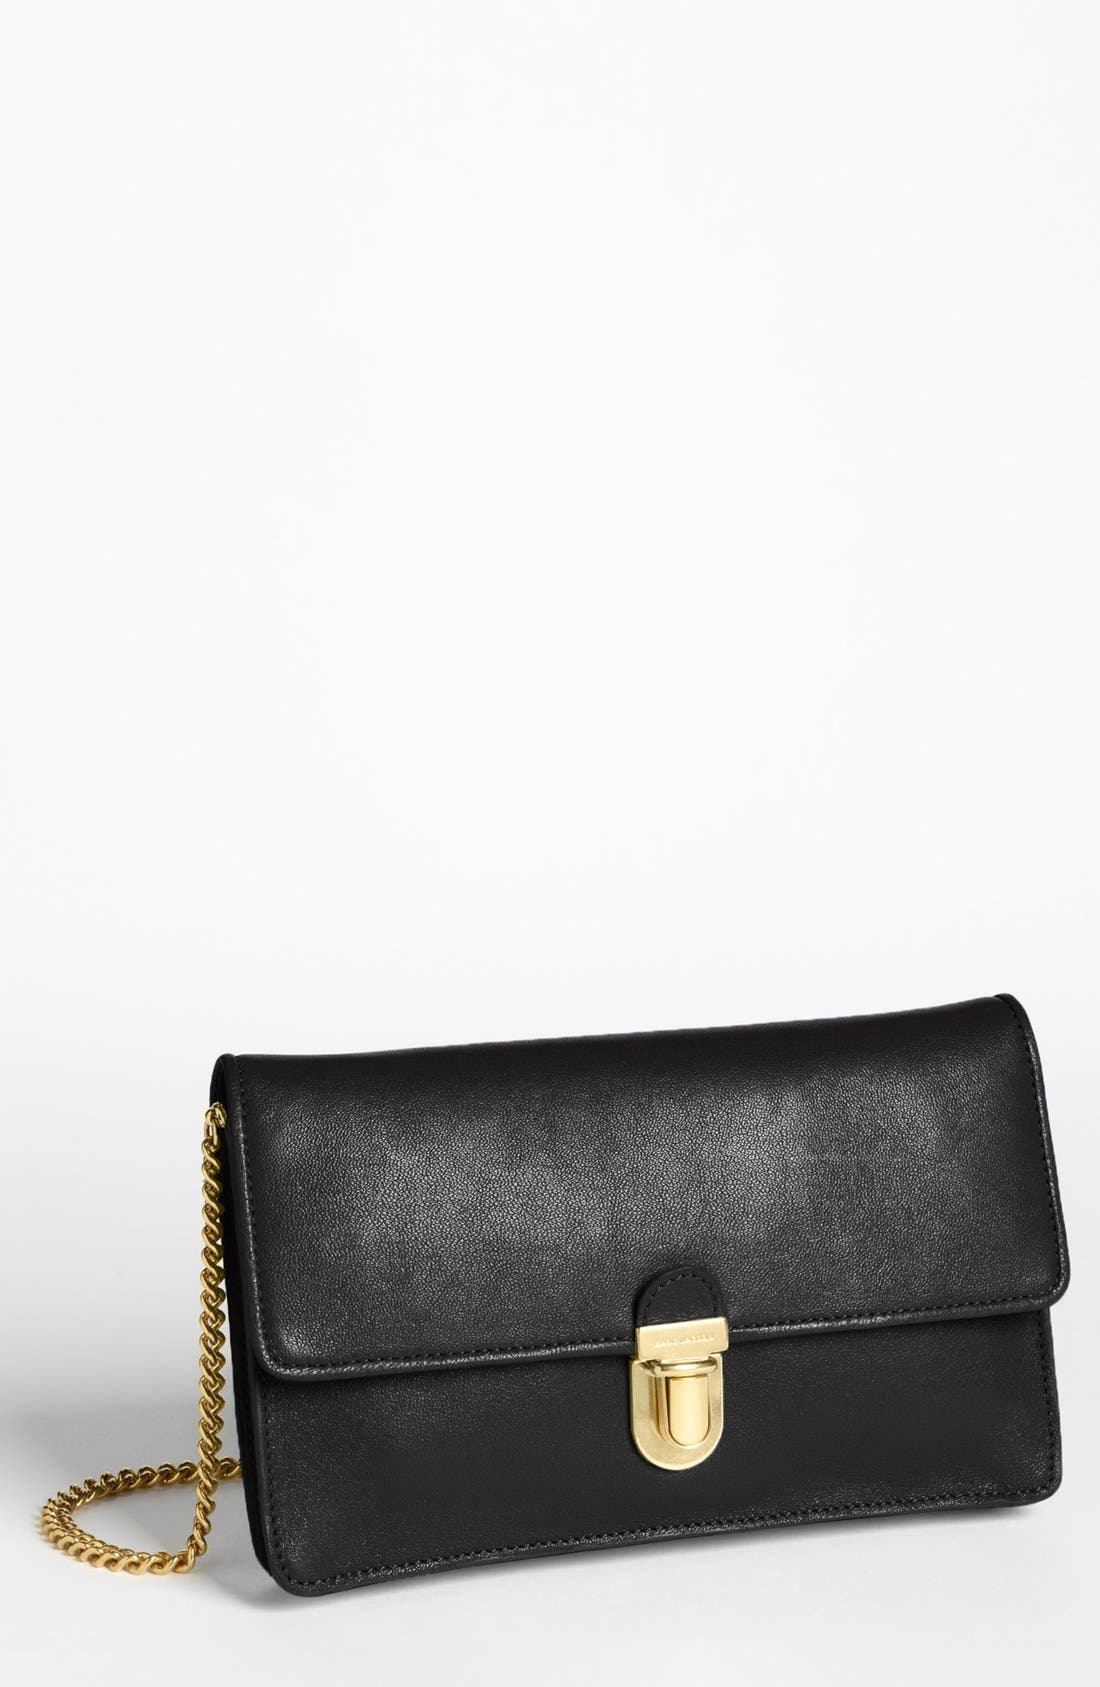 Main Image - MARC JACOBS Leather Clutch